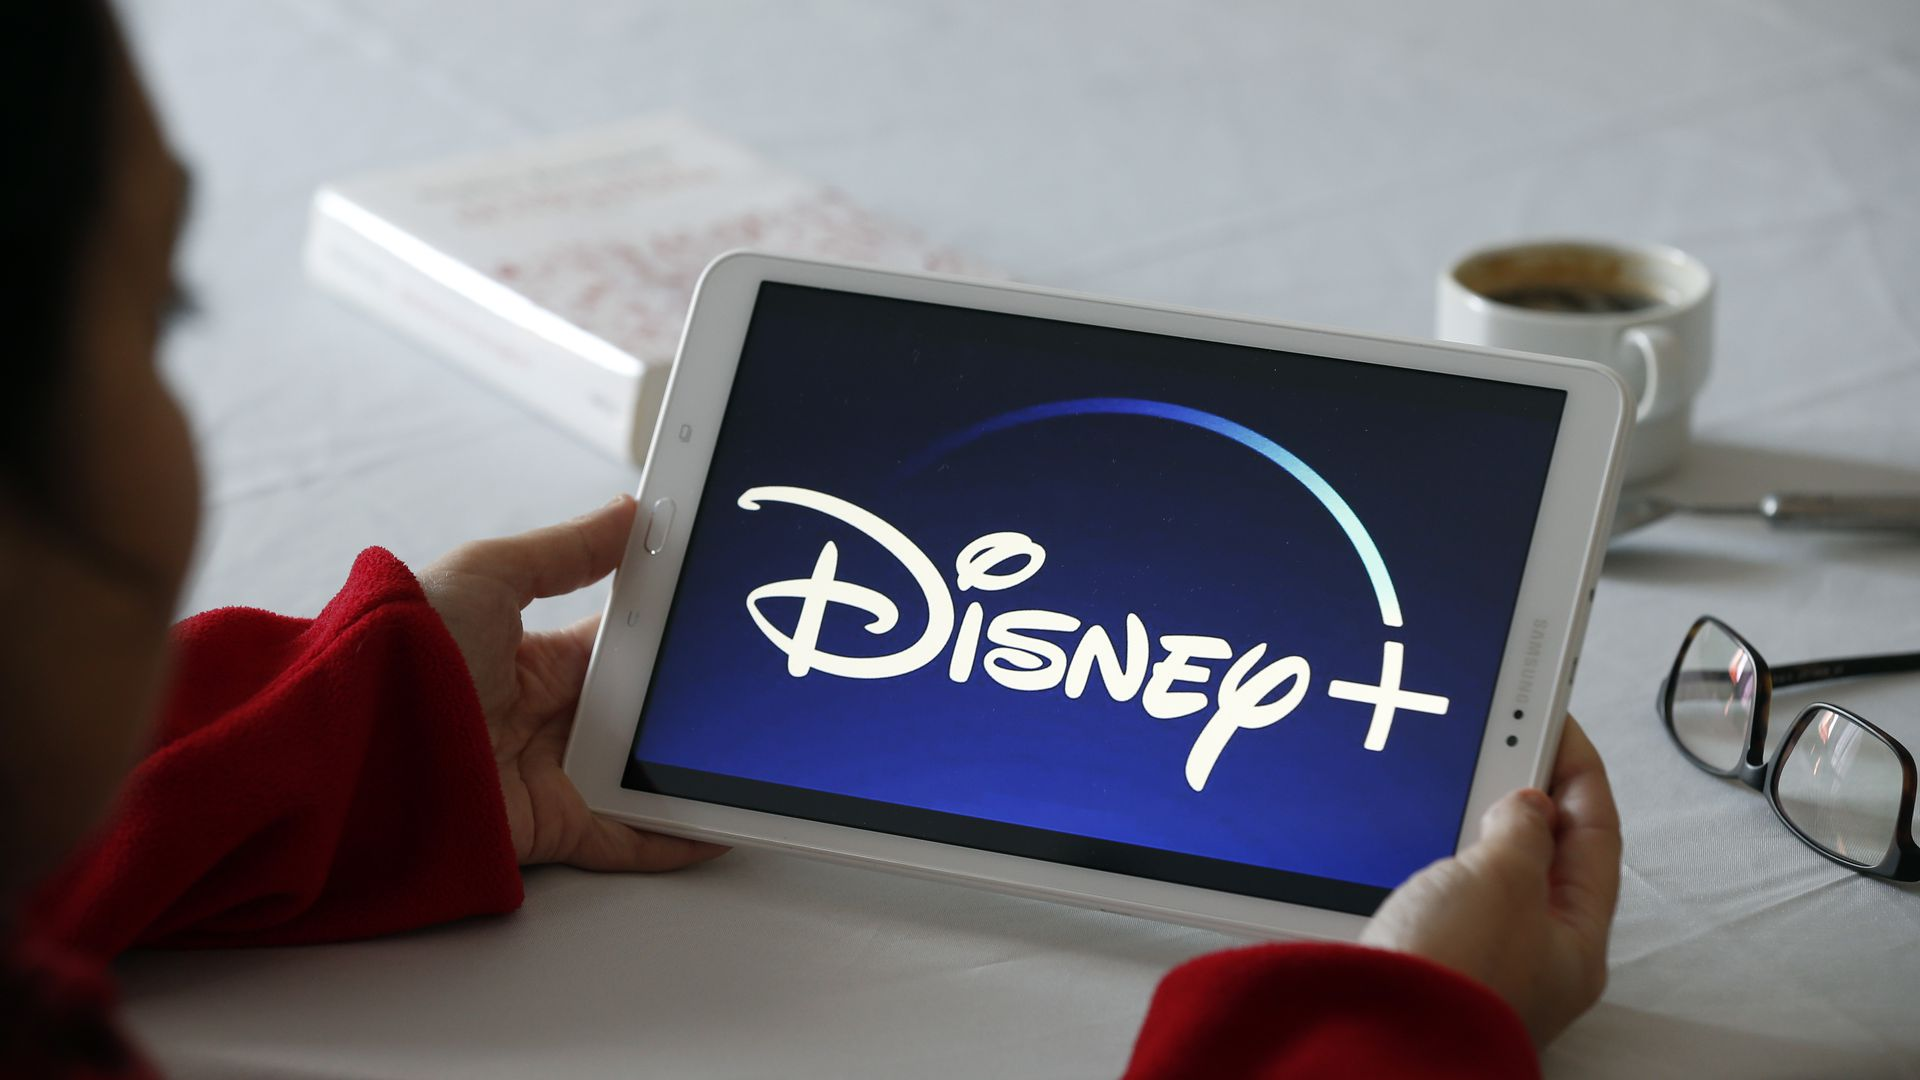 Disney+ subscriptions soar to 28.6 million, topping estimates